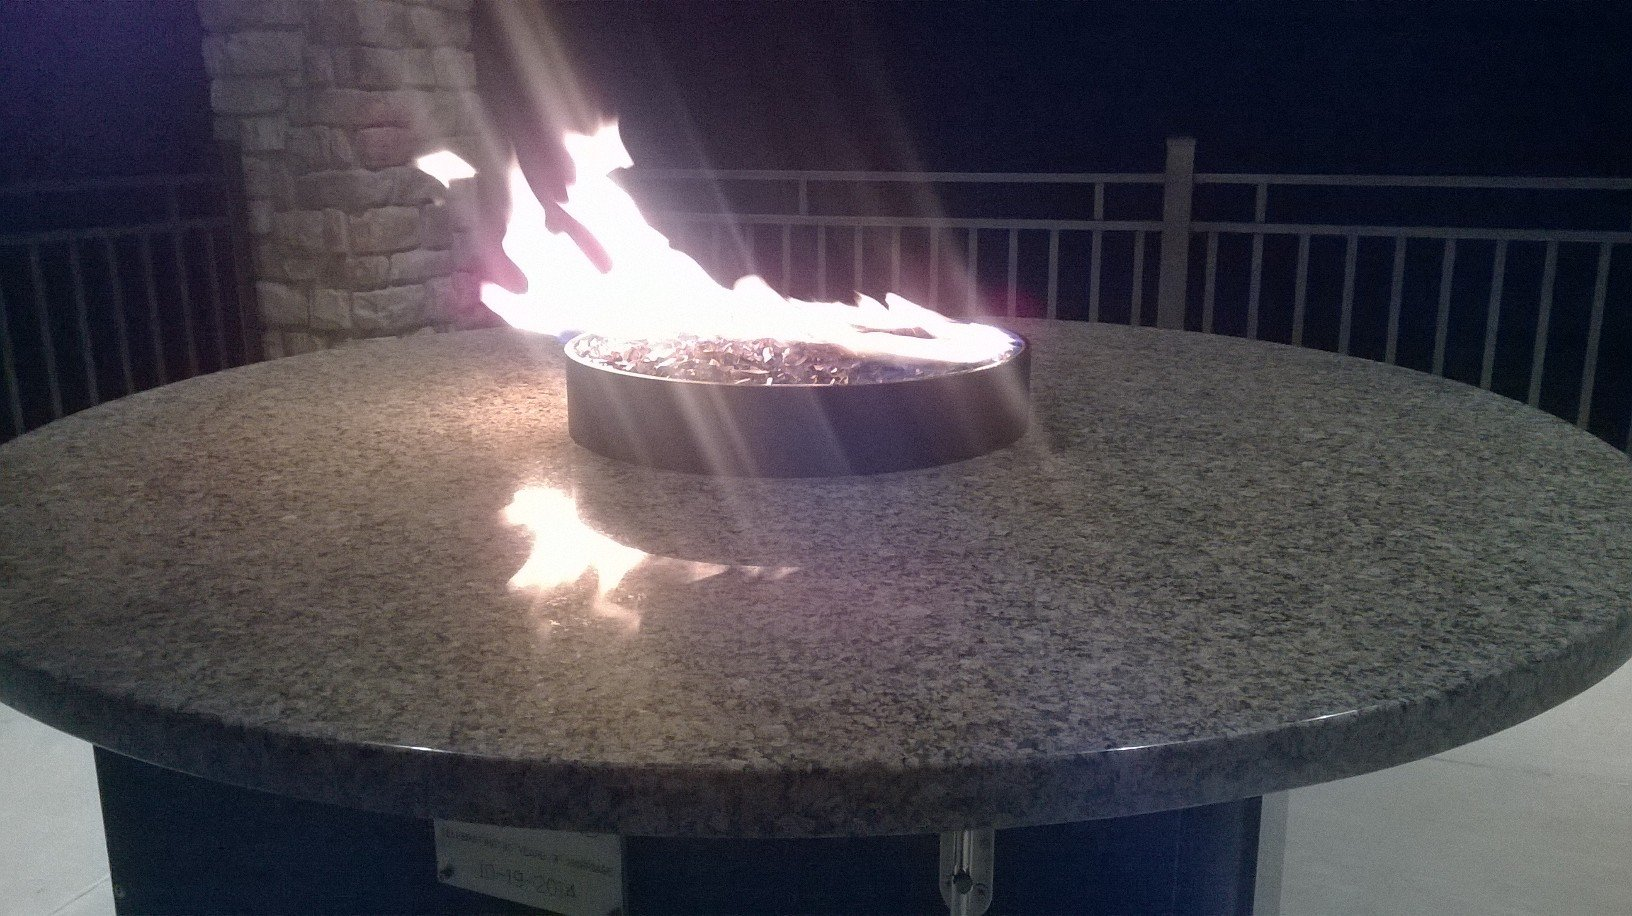 FR12CK: Complete 12'' BASIC Fire Pit Kit 316 Stainless Convert Existing Wood Fire Pit to Propane; Lifetime Burners all 316 Stainless (not Lessor 304). See EasyFirePits.com Gallery!